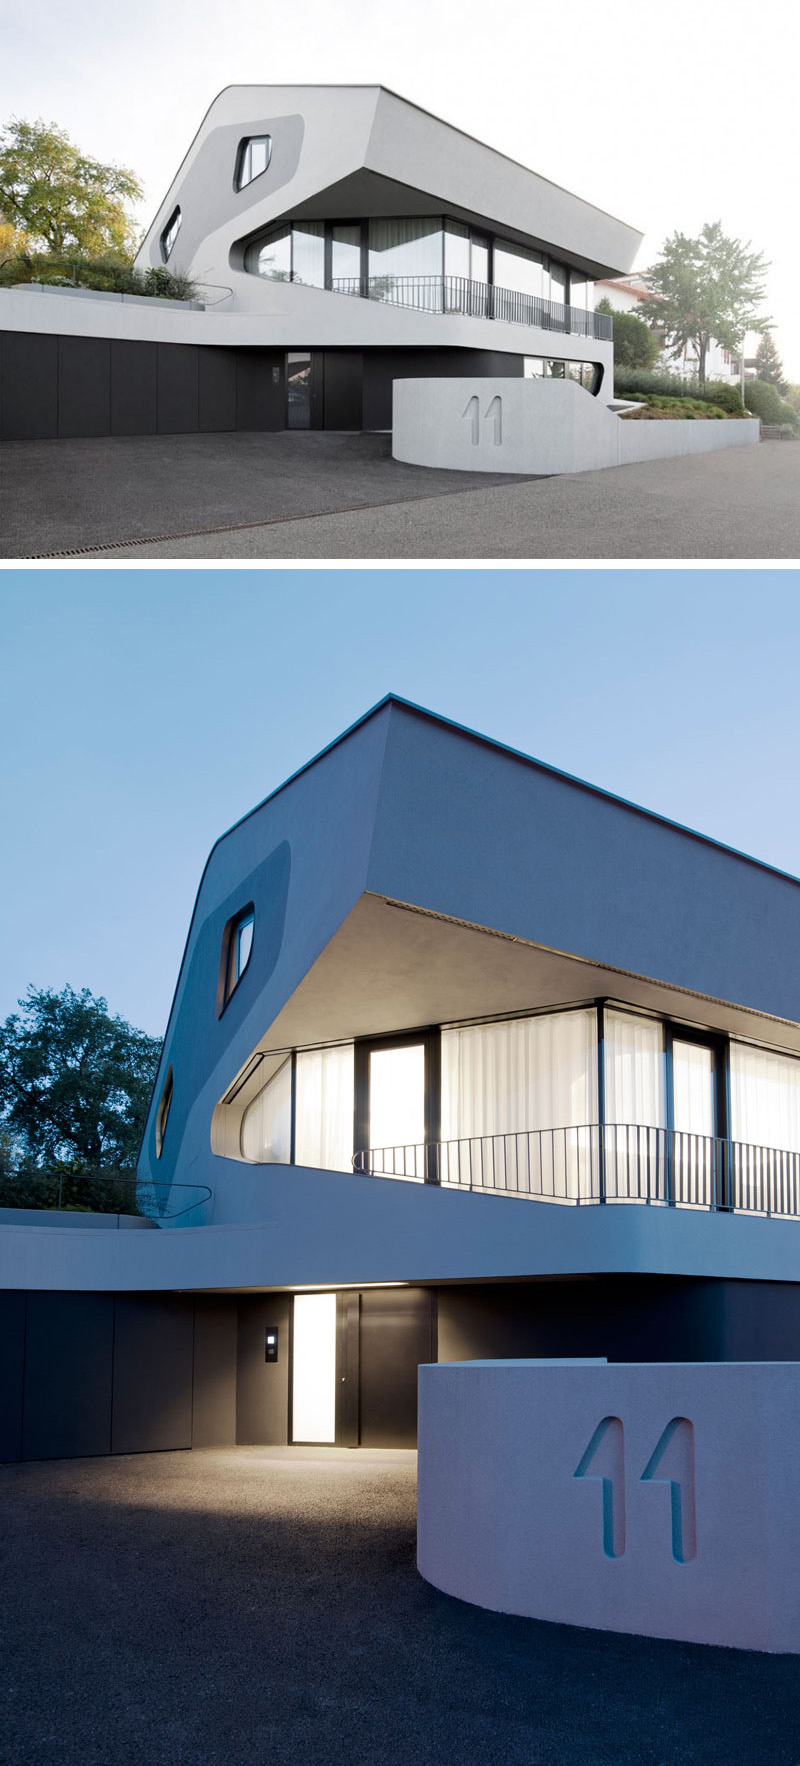 J. Mayer H. Architects have designed the OLS House, a modern black, white and grey house in Germany.